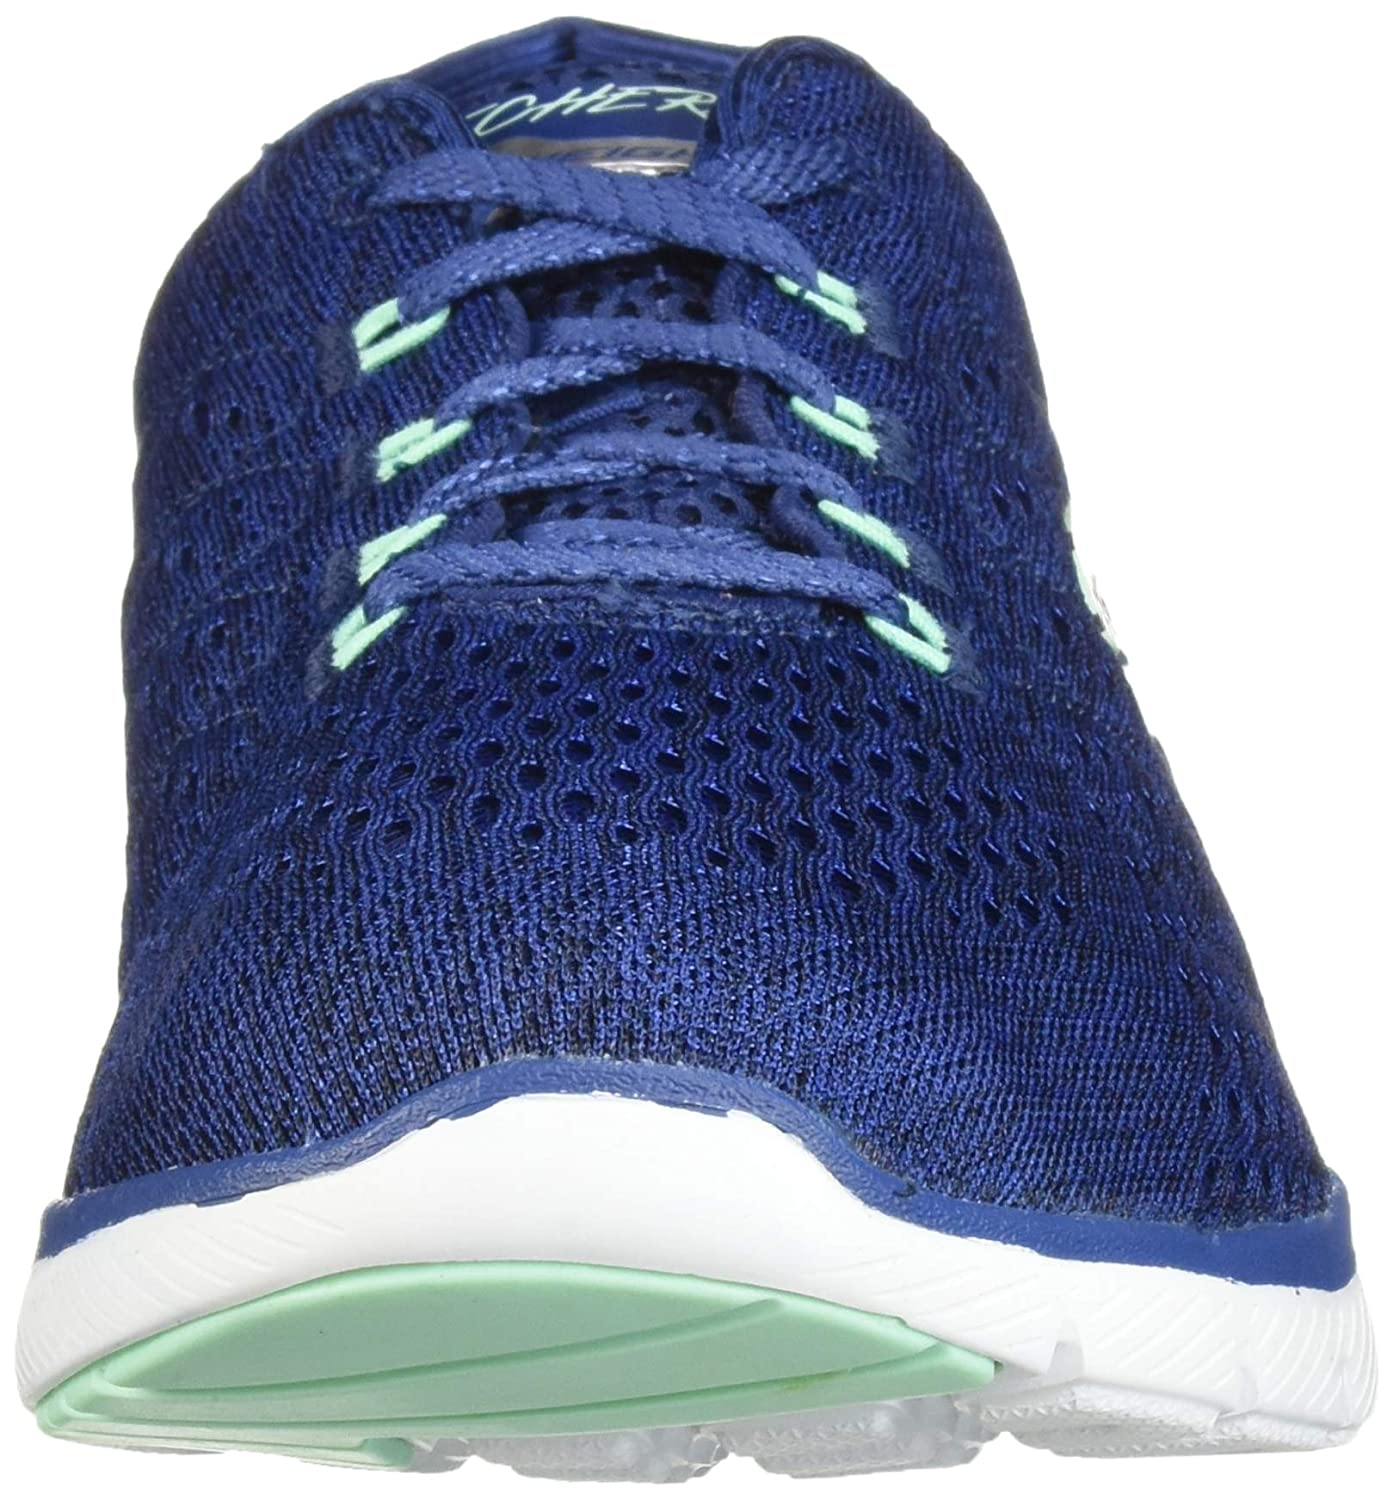 Deportivas Appeal Para 0 Satellites Zapatillas Skechers 3 Flex wYC55qp